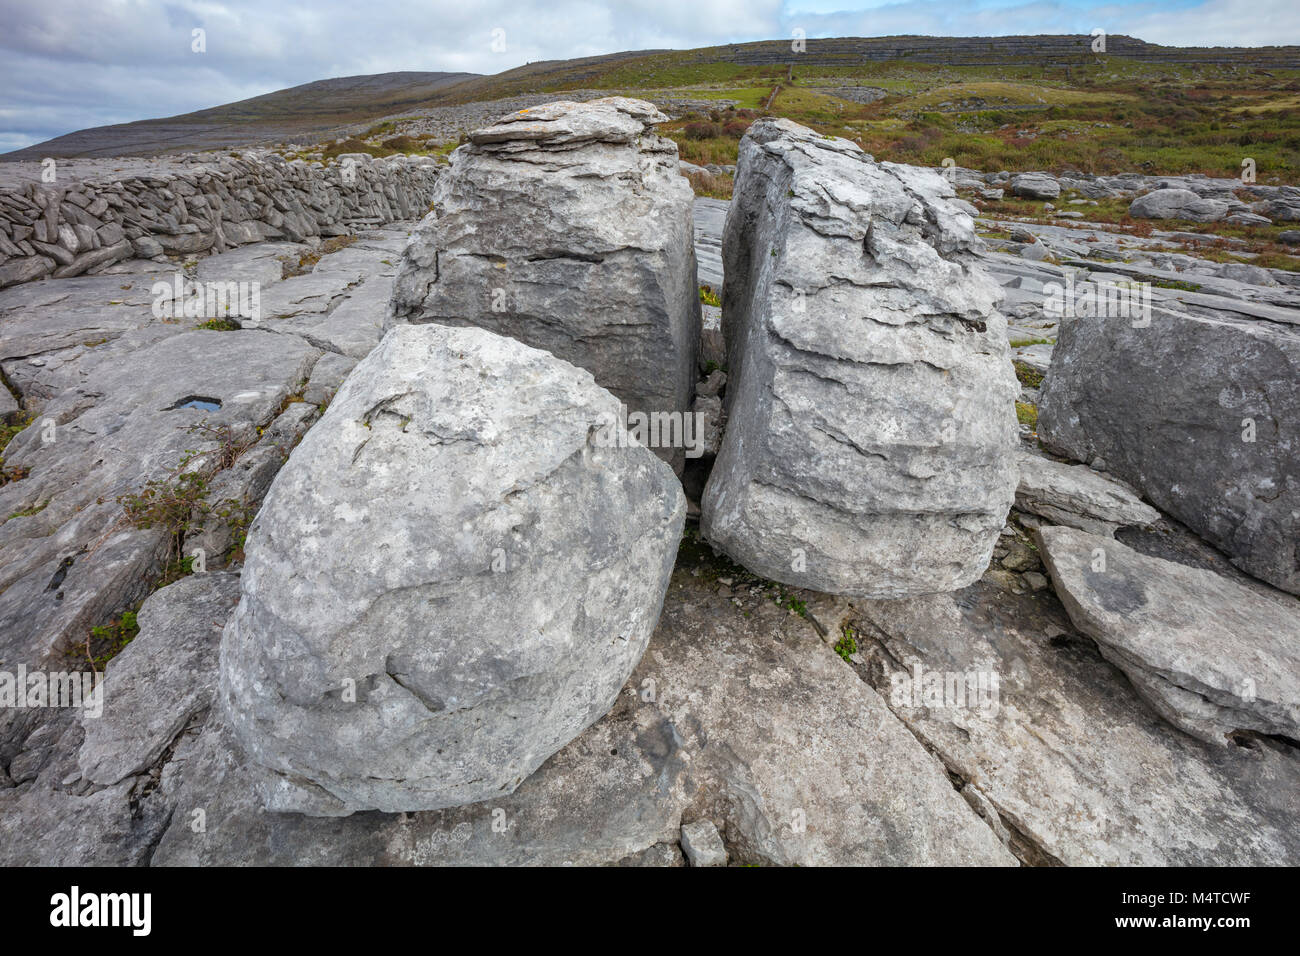 Limestone pavement and boulders in The Burren, County Clare, Ireland. - Stock Image